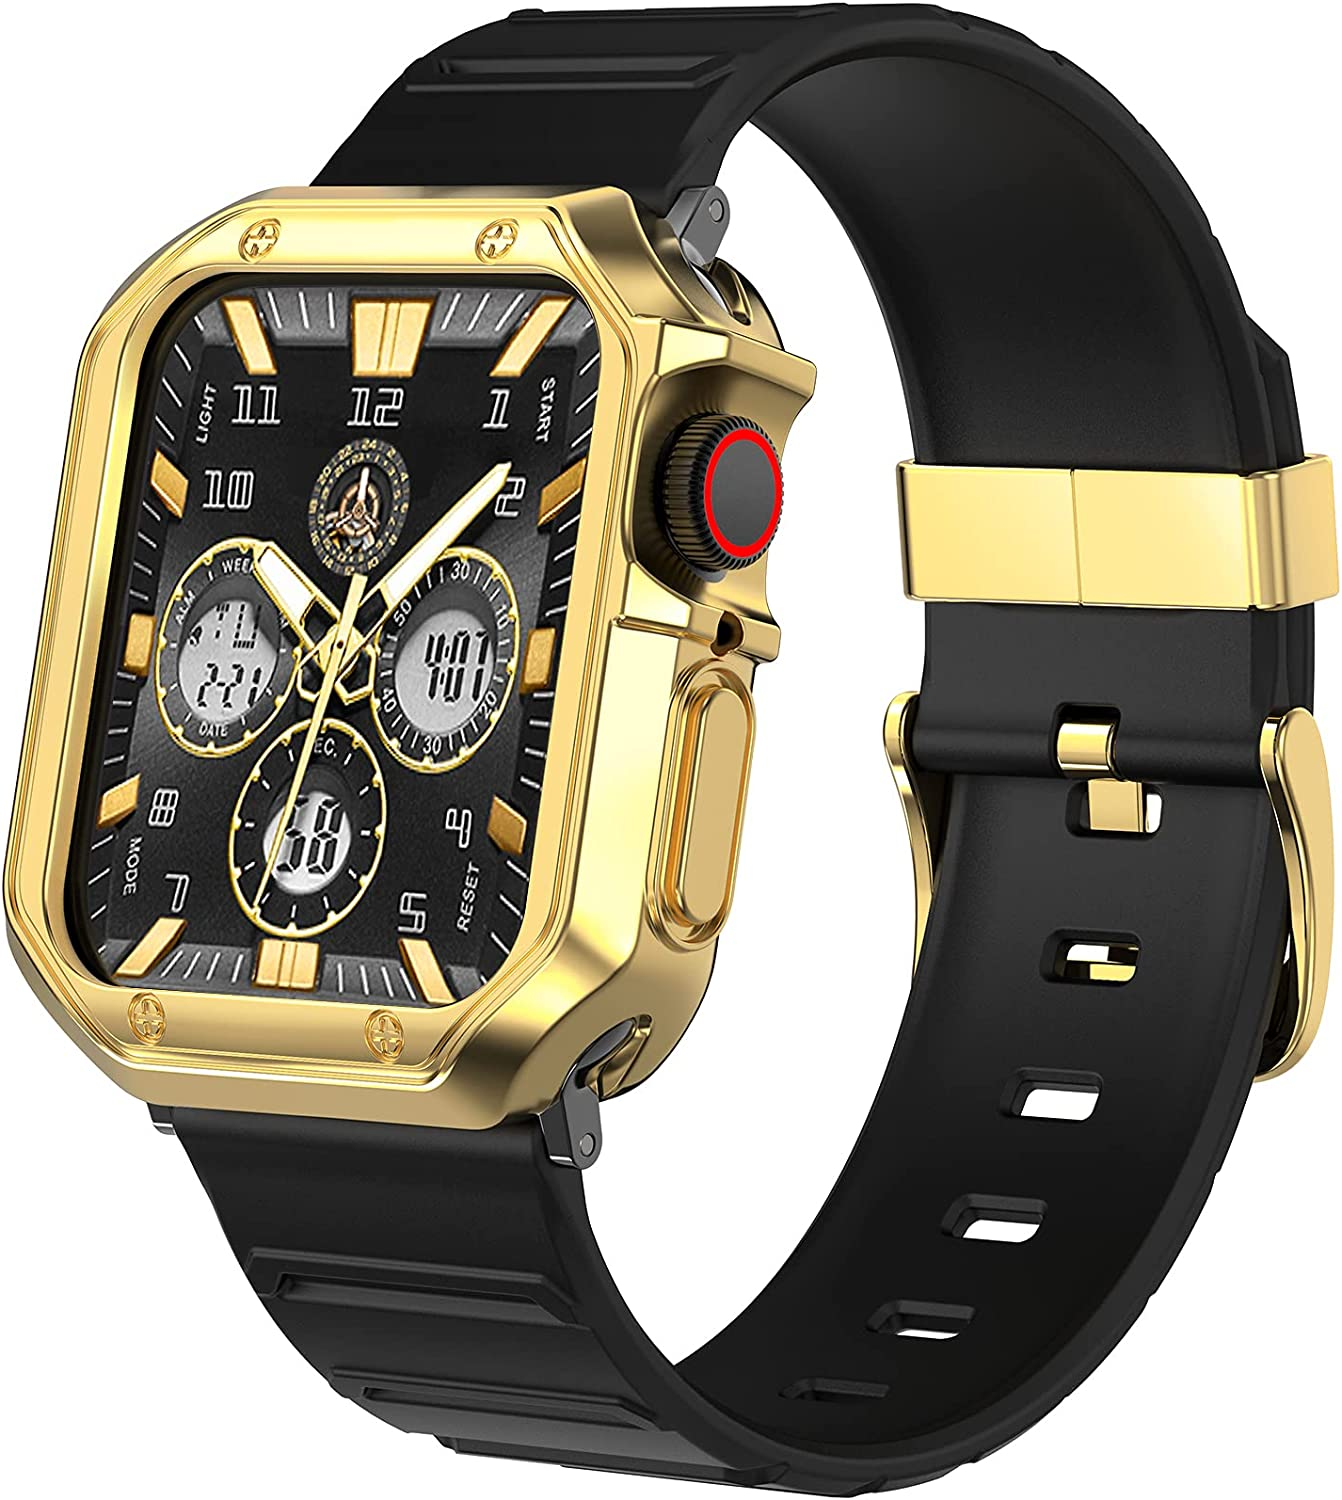 Swhatty Band Case Compatible with Apple Watch 44mm 42mm, Designer Men Women Shockproof Rugged Military Black Strap with Protector Cover, Sport Wristband Bumper for iWatch SE Series 6 5 4 3 2 1